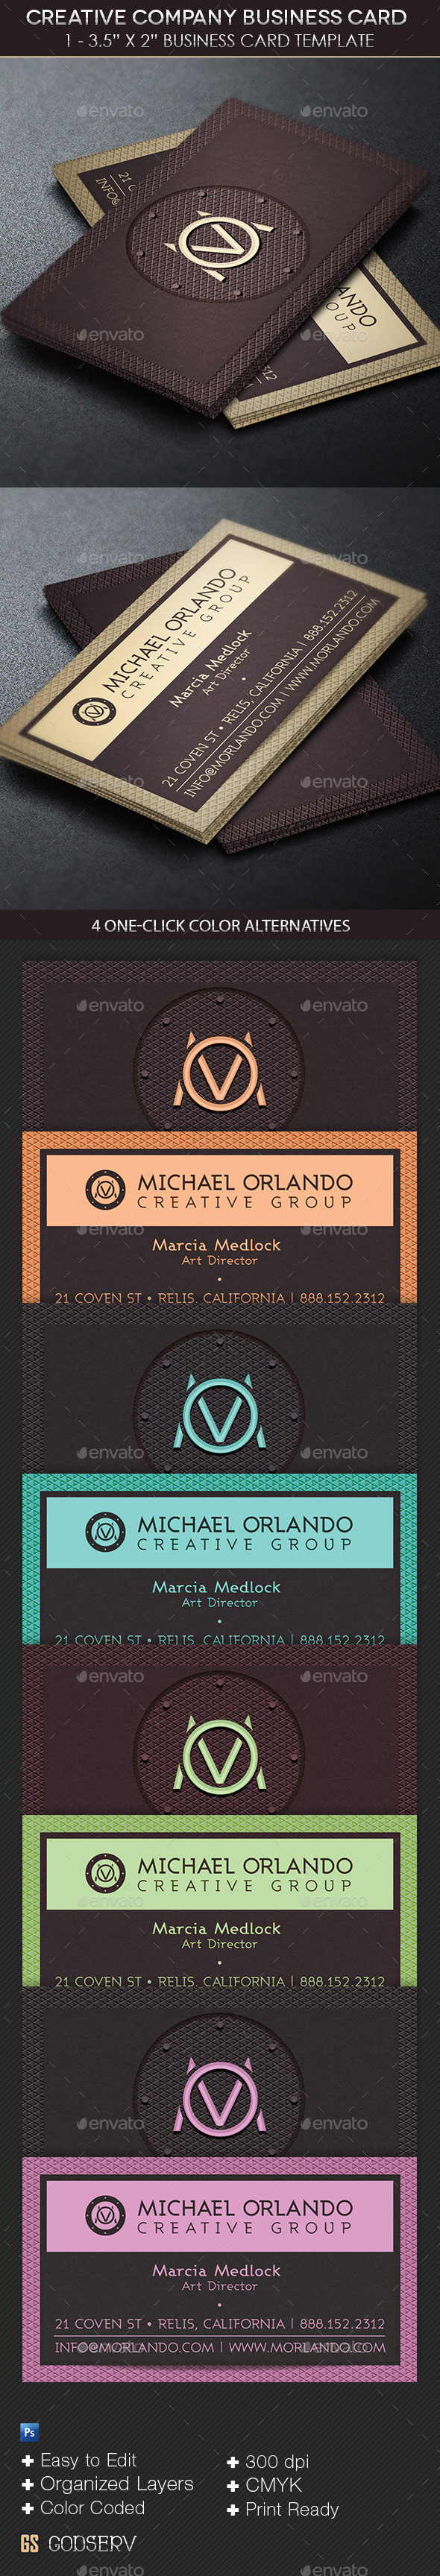 Creative Company Business Card Template  - Industry Specific Business Cards